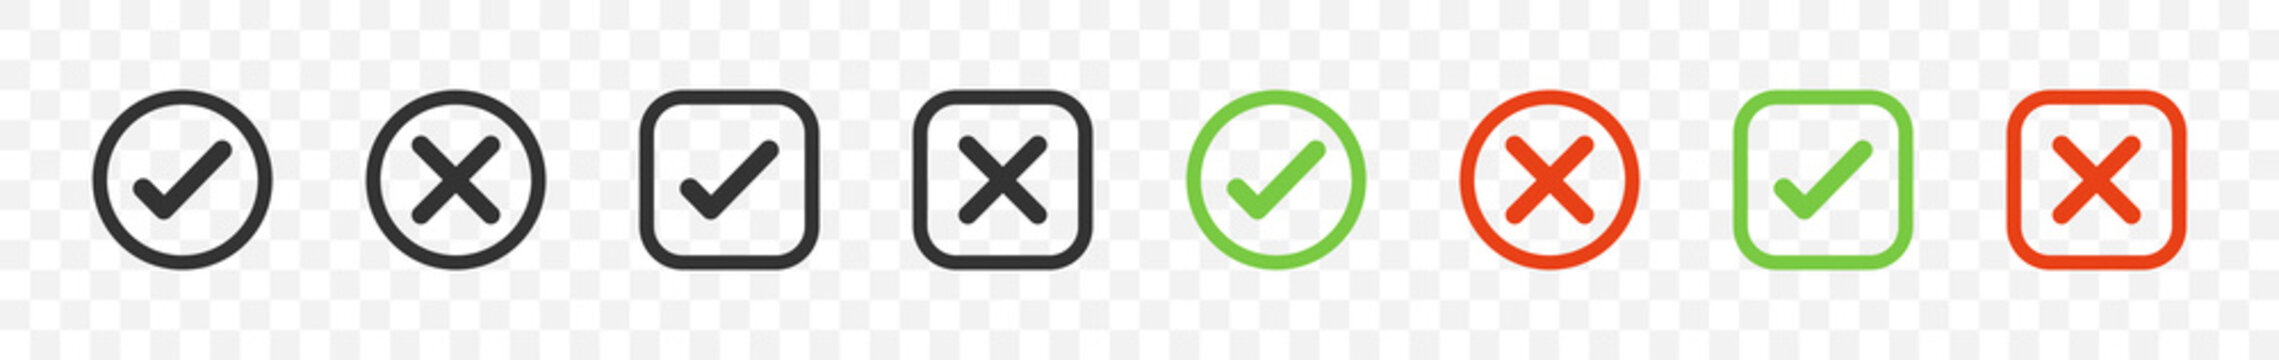 Check mark with cross mark. Vector icons in square and circle. Yes or No symbols. Check mark and cross icons. Vector illustration